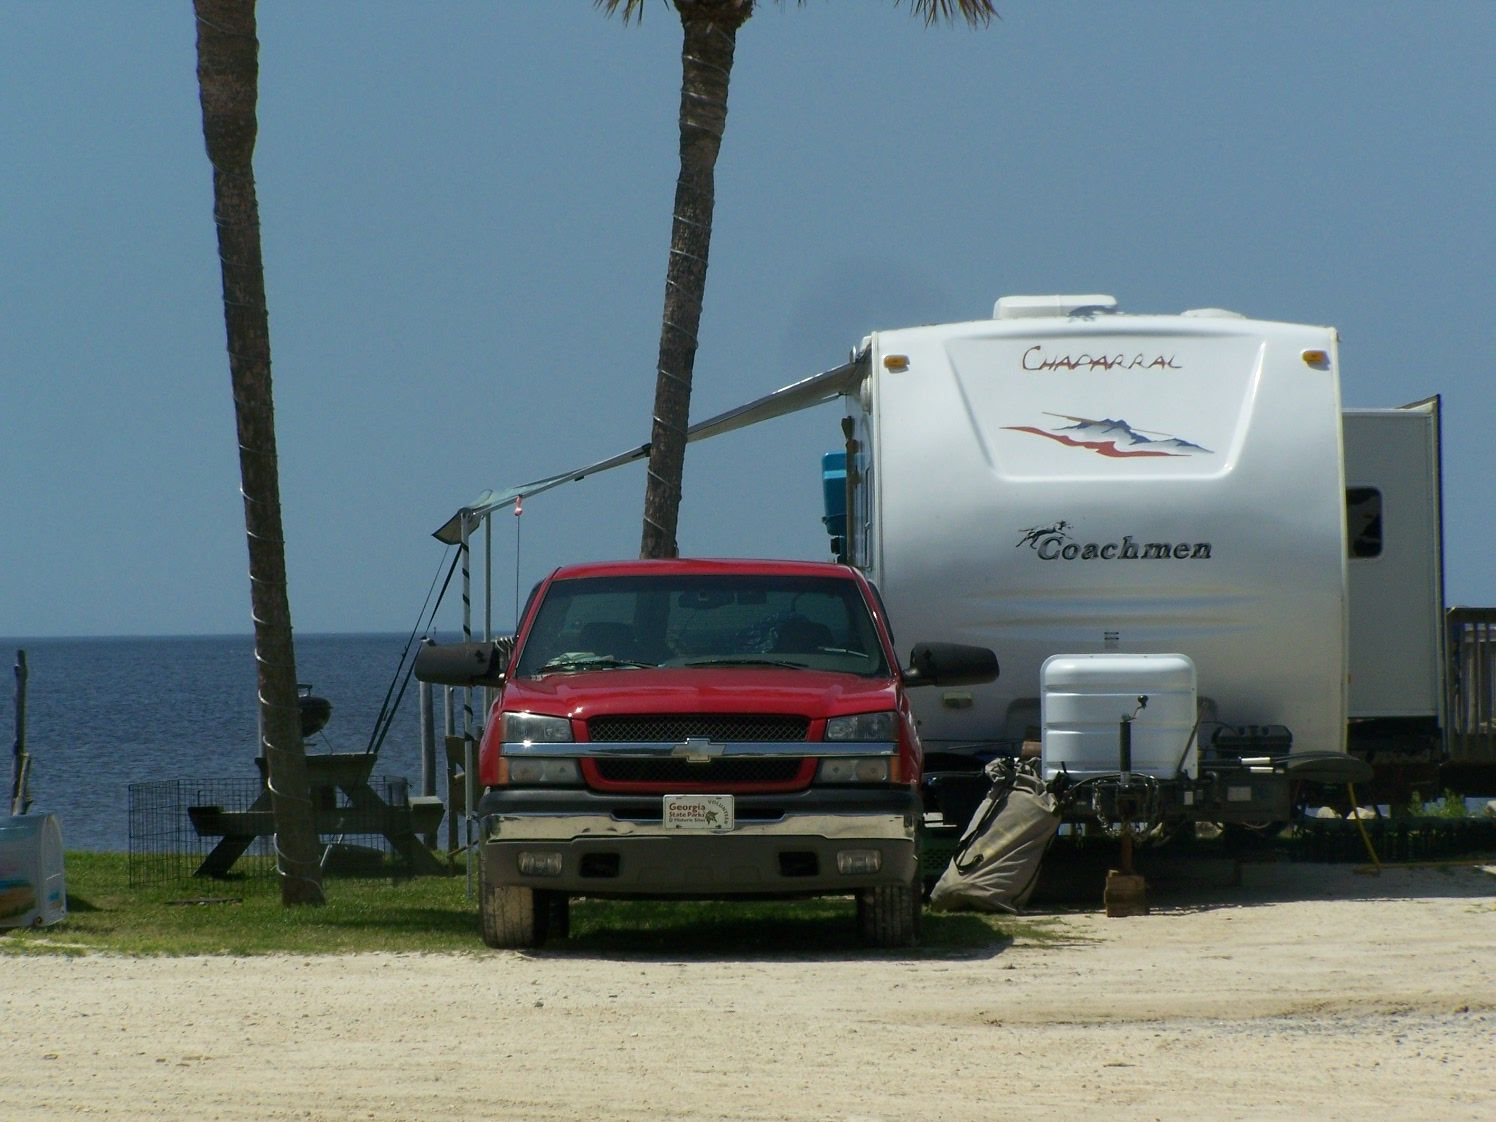 Keaton Beach Old Pavillion Rv Park Site 24 On The Gulf Arpil 15 25 2013 With Images Rv Parks Camping Beach